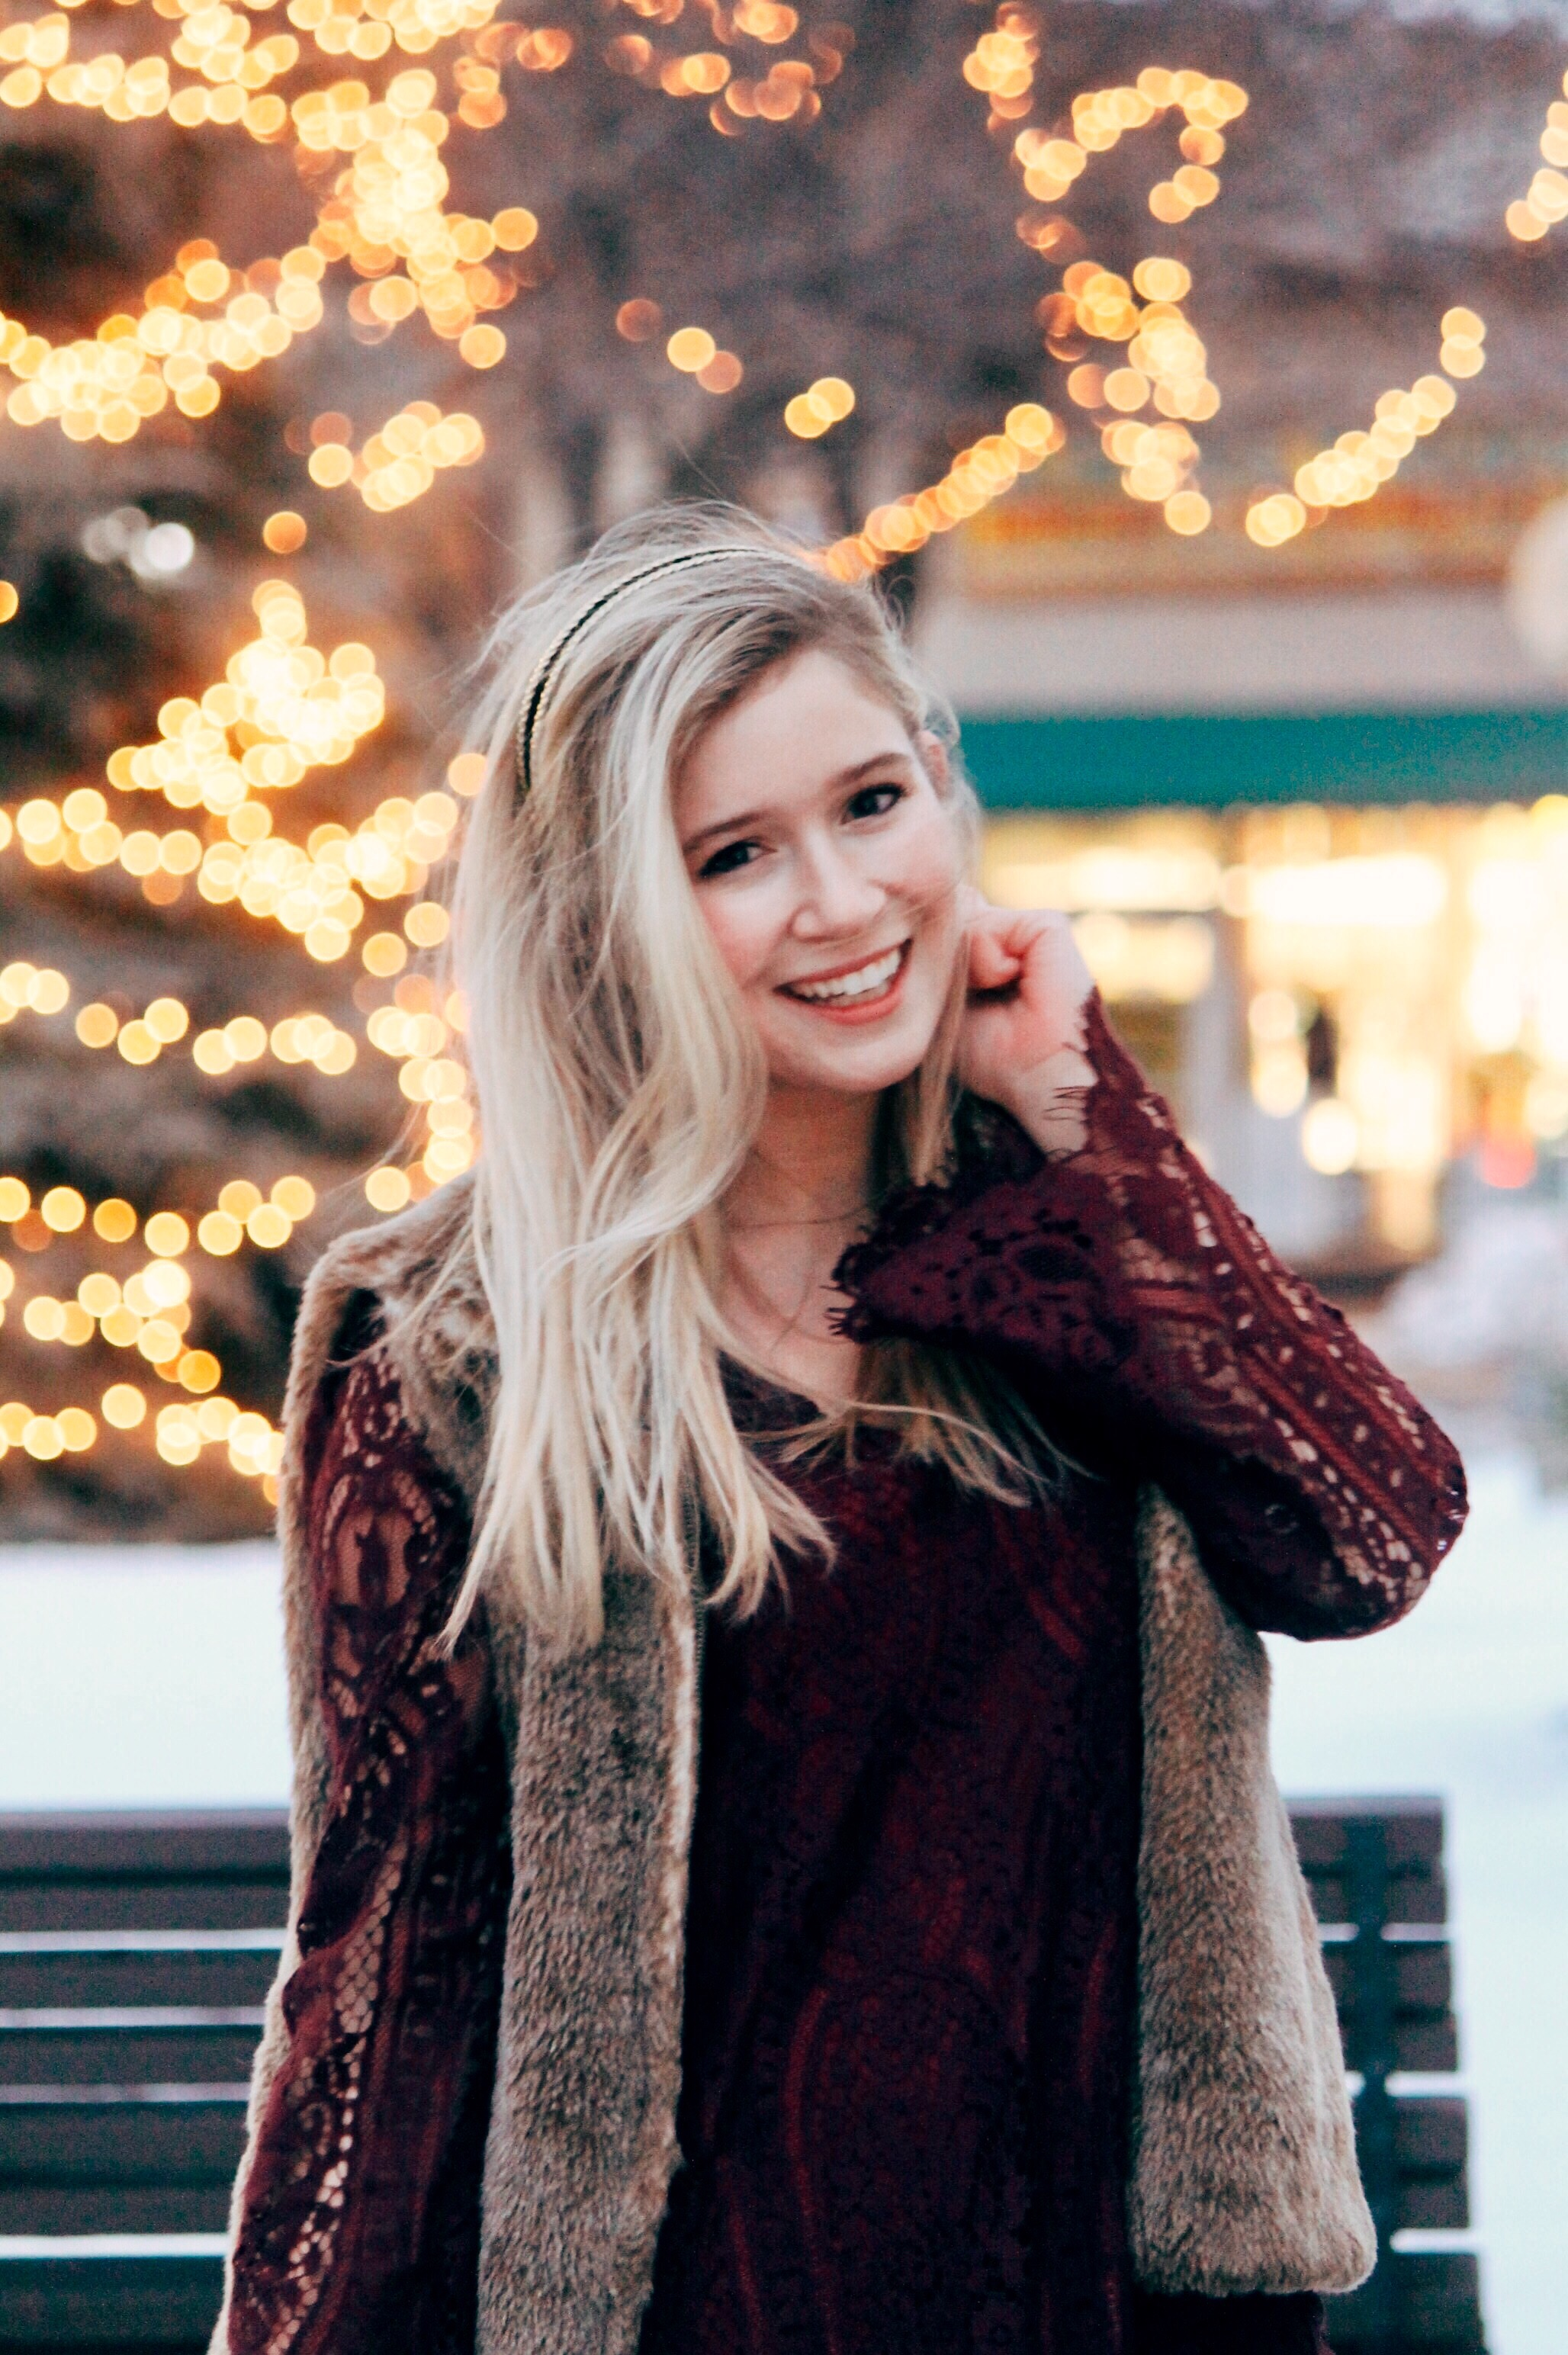 Holiday Party Look + Playlist